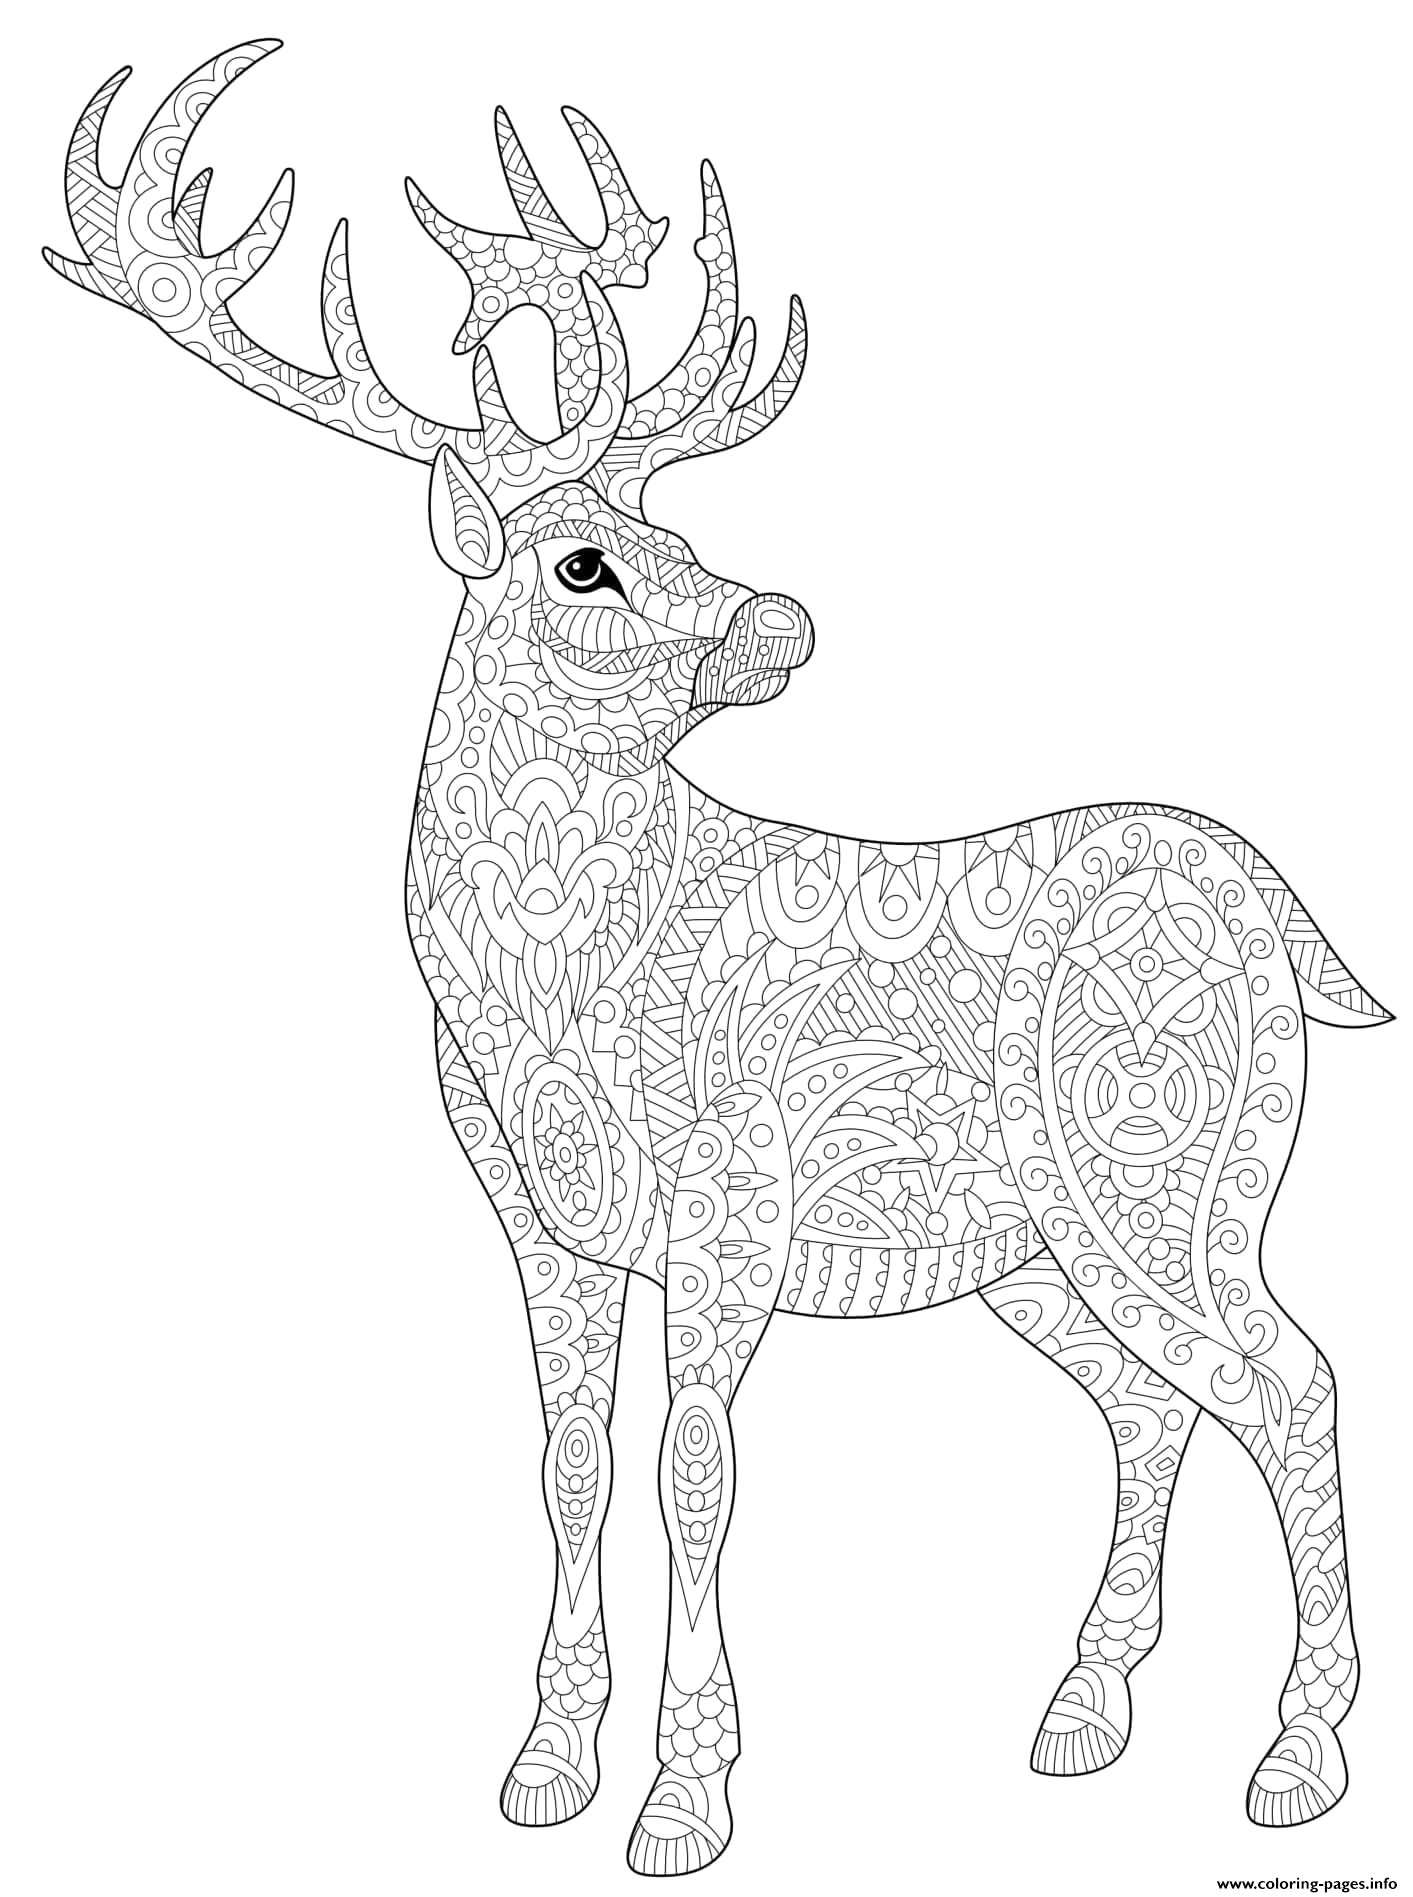 christmas for adults stag deer reindeer doodle printable coloring pages book